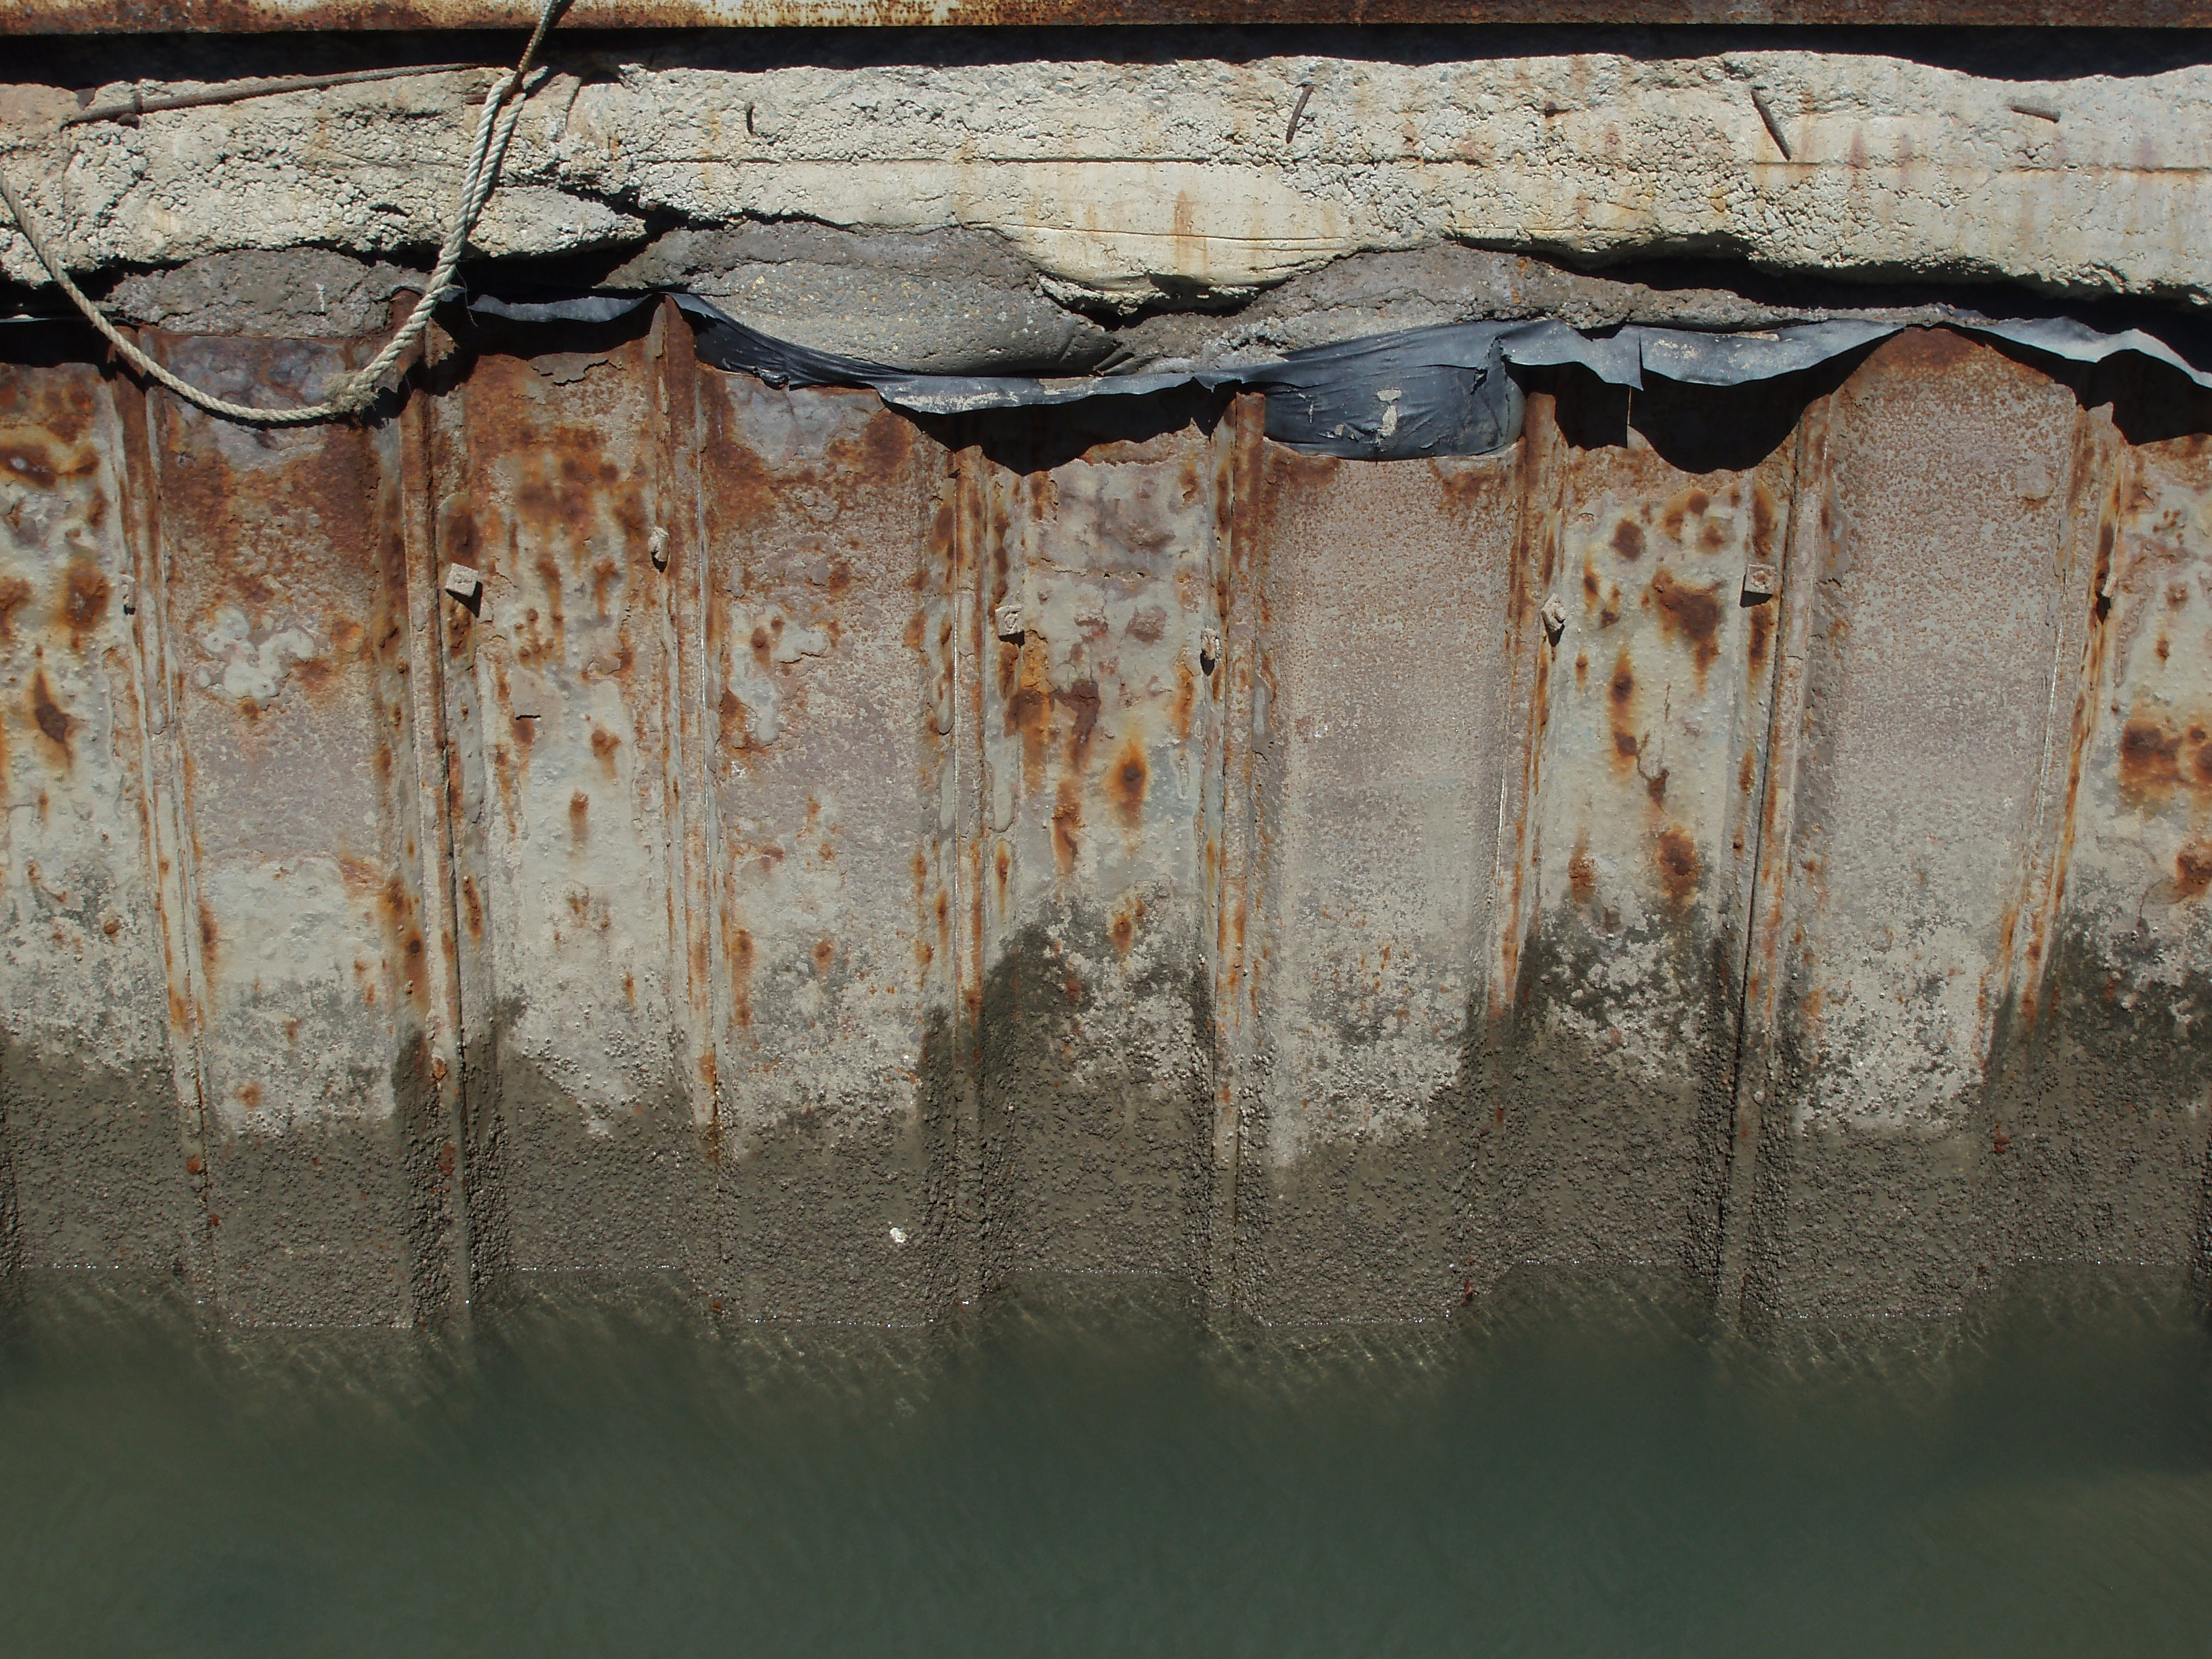 a rusty quayside made from metal pilings